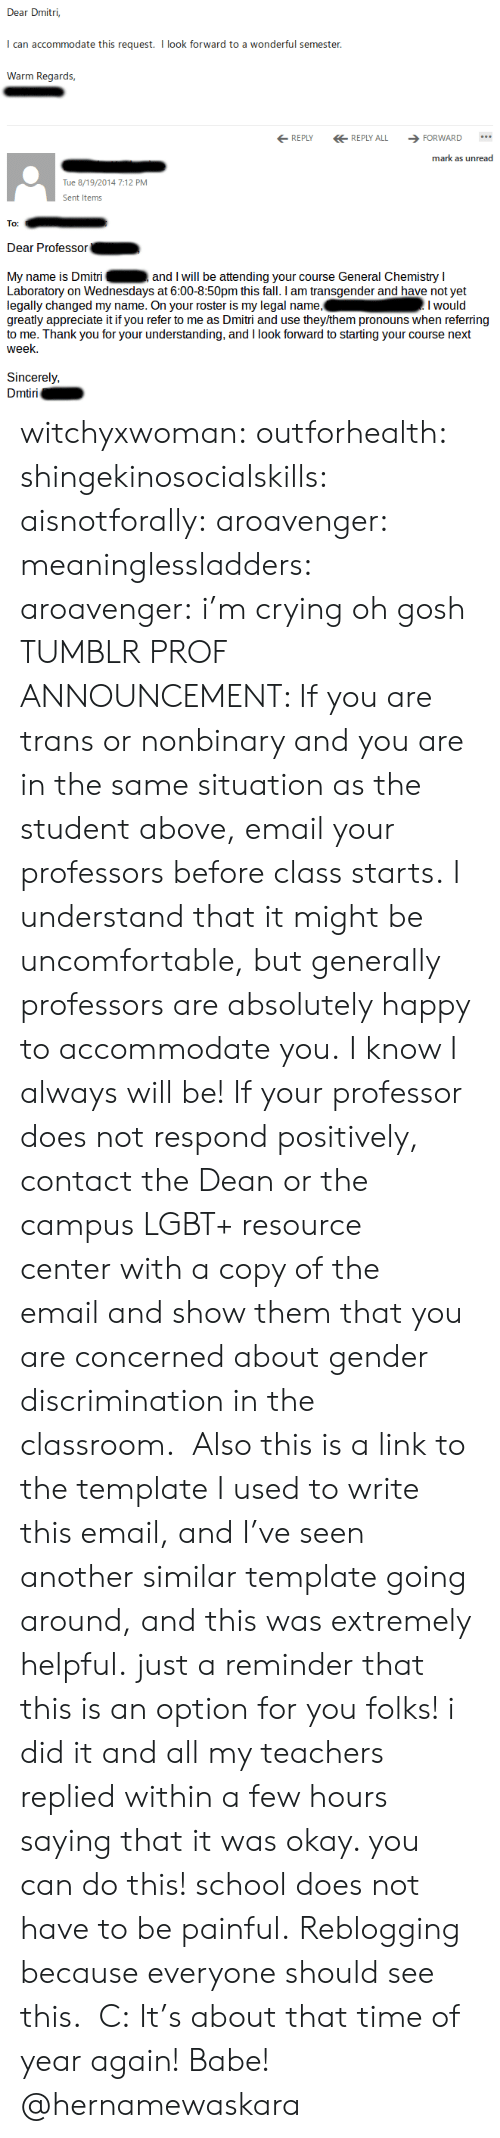 Crying, Fall, and Lgbt: Dear Dmitri,  can accommodate this request. I look forward to a wonderful semester  Wann Reak  REPLYREPLY ALL FORWARD  mark as unread  Tue 8/19/2014 7:12 PM  Sent Item  To:  Dear Professor  My name is Dmitri  Laboratory on Wednesdays at 6:00-8:50pm this fall. I am transgender and have not yet  legally changed my name. On your roster is my legal name,Iwould  greatly appreciate it if you refer to me as Dmitri and use they/them pronouns when referring  to me. Thank you for your understanding, and I look forward to starting your course next  week.  and I will be attending your course General Chemistry I  Sincerely,  iri witchyxwoman:  outforhealth: shingekinosocialskills:  aisnotforally:  aroavenger:  meaninglessladders:  aroavenger:  i'm crying oh gosh  TUMBLR PROF ANNOUNCEMENT: If you are trans or nonbinary and you are in the same situation as the student above,email your professors before class starts.I understand that it might be uncomfortable, but generally professors are absolutely happy to accommodate you.I know I always will be! If your professor does not respond positively, contact the Dean or the campus LGBT+ resource centerwith a copy of the emailand show them that you are concerned about gender discrimination in the classroom.  Also this is a link to the template I used to write this email, and I've seen another similar template going around, and this was extremely helpful.  just a reminder that this is an option for you folks! i did it and all my teachers replied within a few hours saying that it was okay. you can do this! school does not have to be painful.   Reblogging because everyone should see this. C:  It's about that time of year again!   Babe! @hernamewaskara